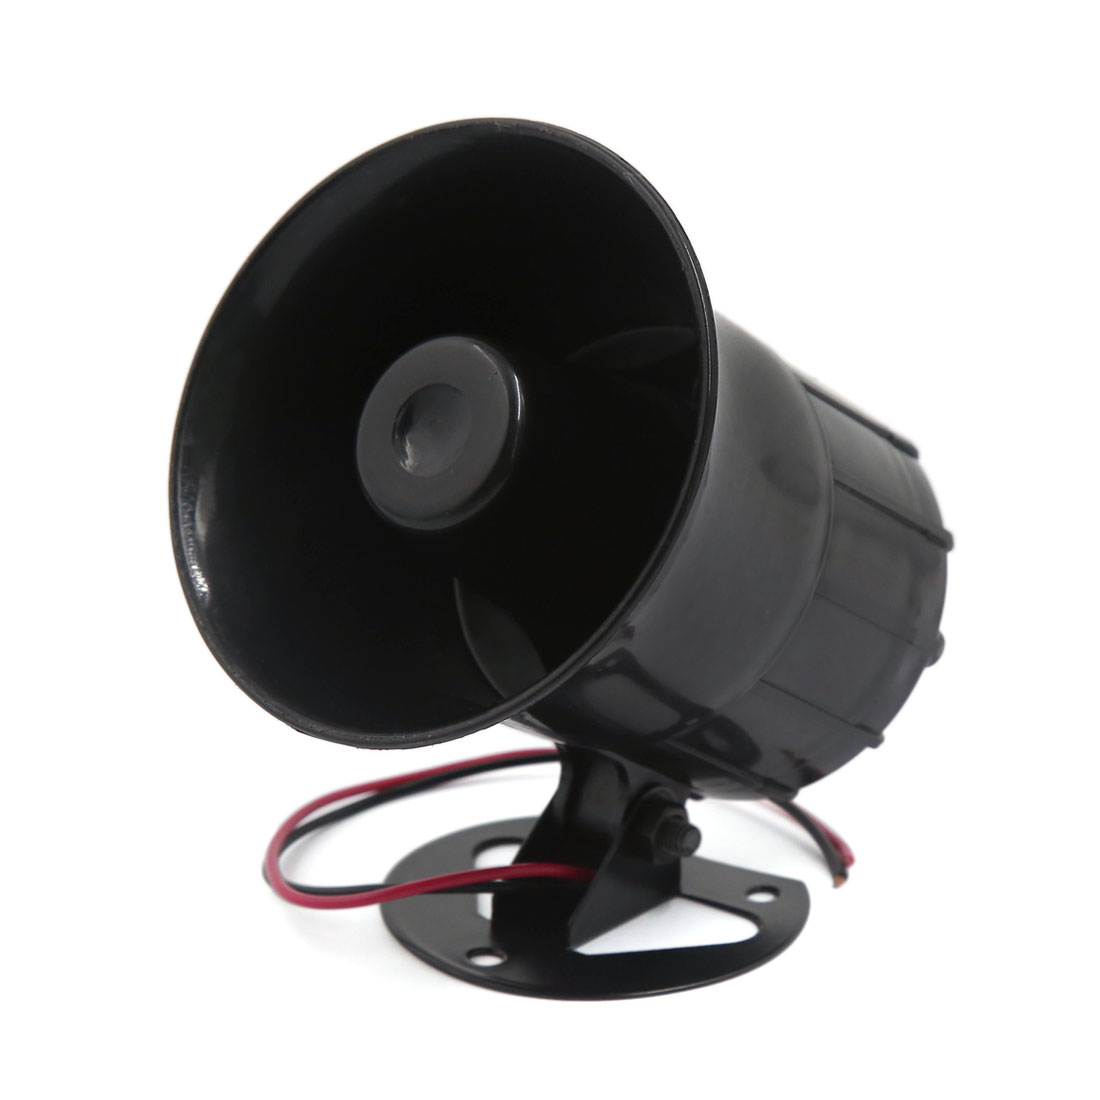 12V 30W Siren Air Horn Car Speaker Motorcycle Loud Electric Alarm 110db